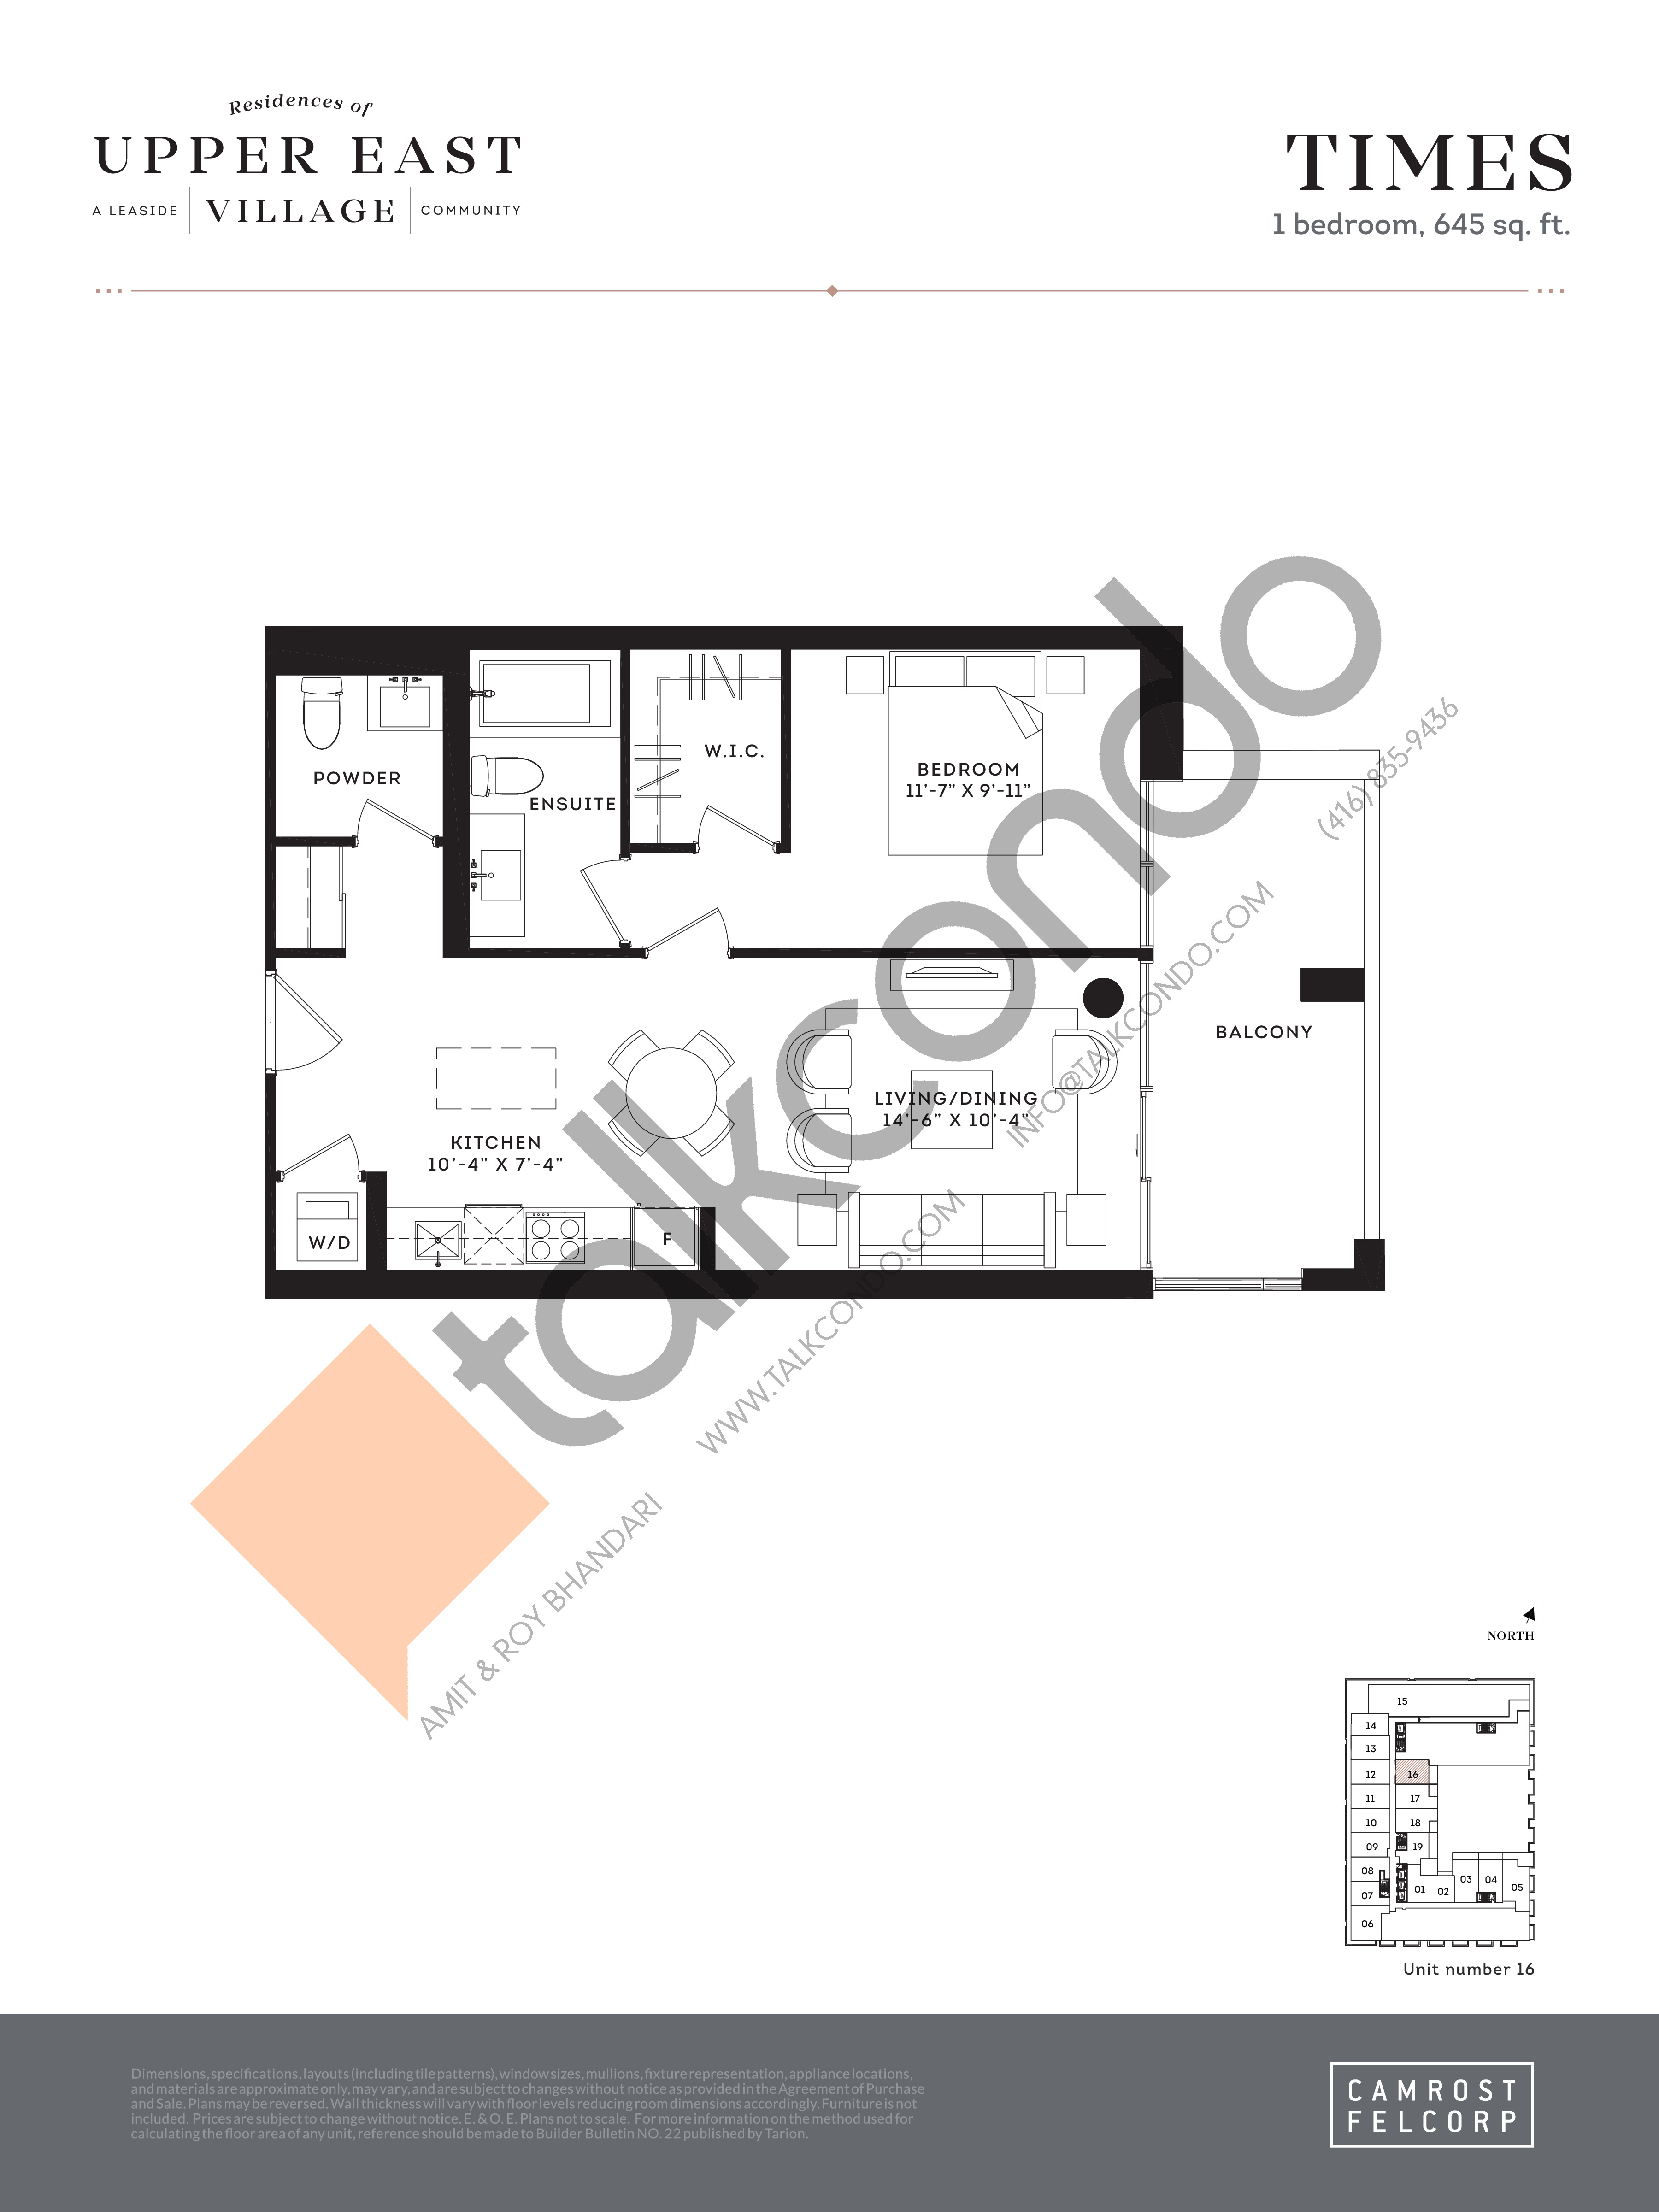 Times Floor Plan at Upper East Village Condos - 645 sq.ft